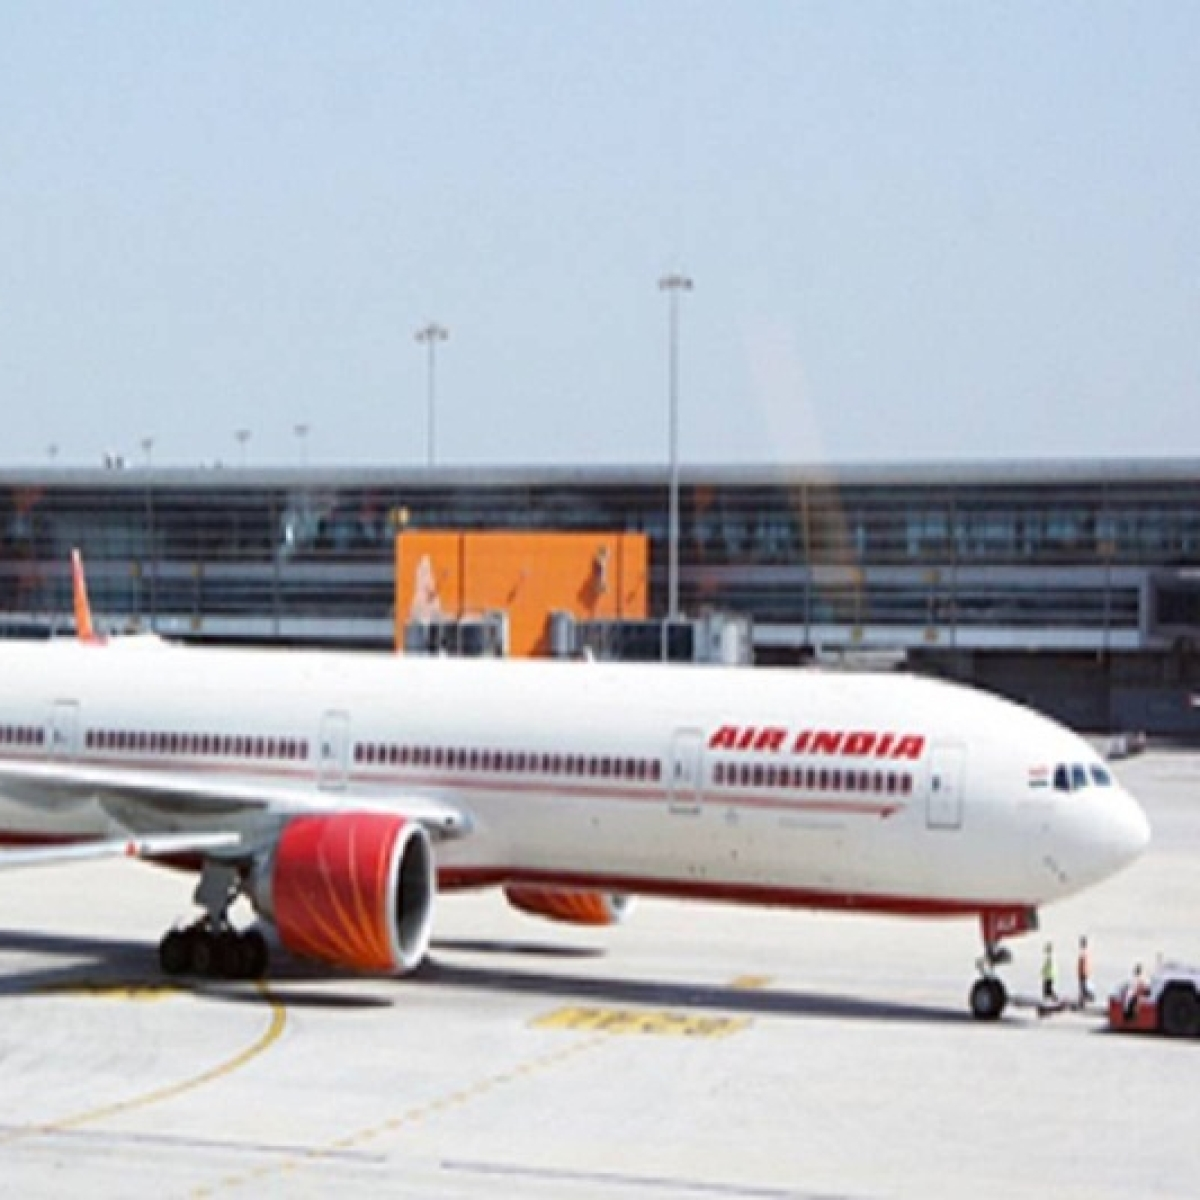 Coronavirus: Pilot tests positive, Delhi-Moscow Air India flight returns midway